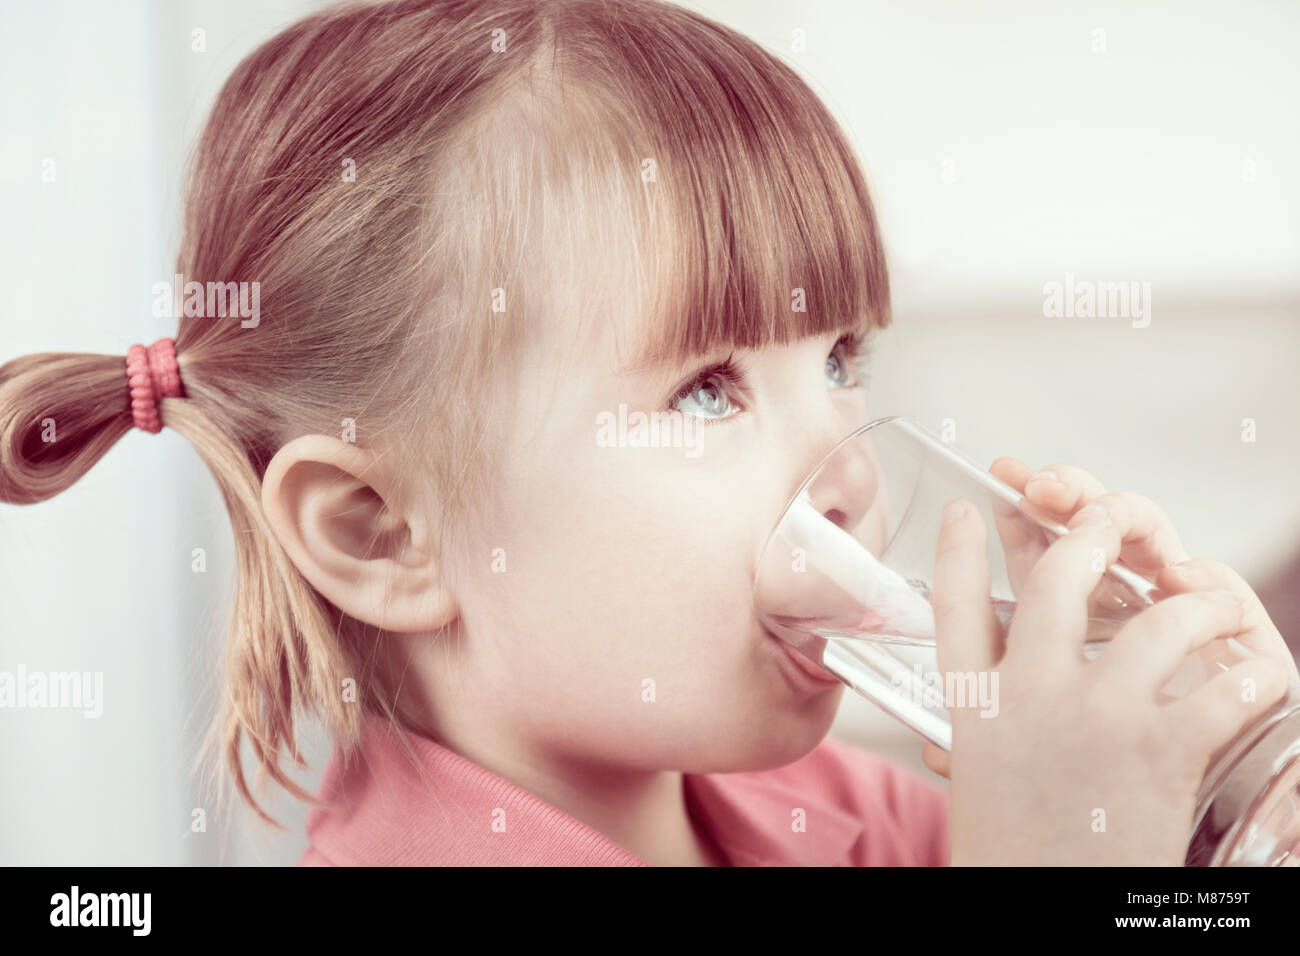 Little girl drinking water - Stock Image